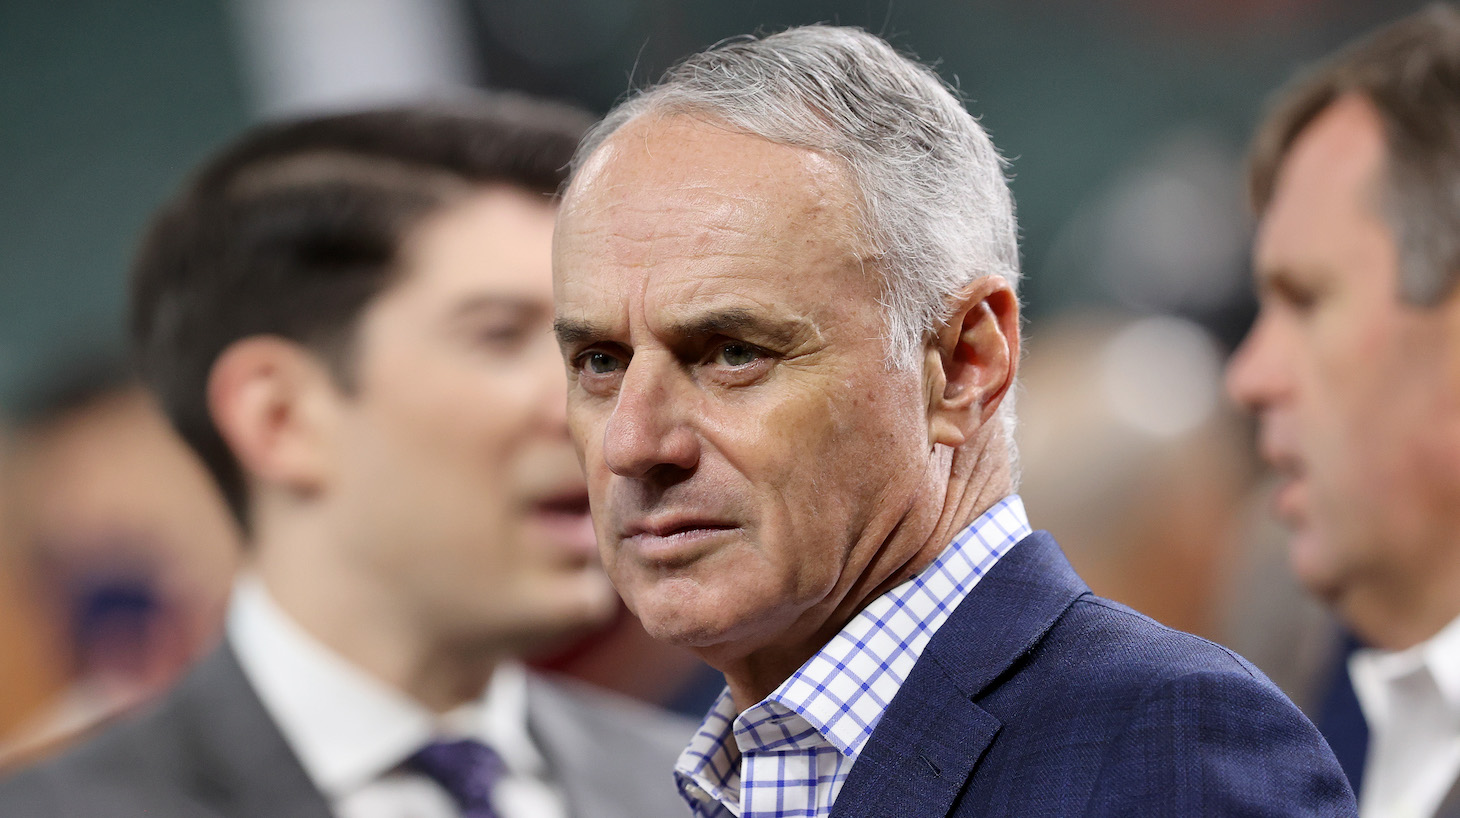 HOUSTON, TEXAS - OCTOBER 26: Major League Baseball Commissioner Rob Manfred looks on prior to Game One of the World Series between the Atlanta Braves and the Houston Astros at Minute Maid Park on October 26, 2021 in Houston, Texas. (Photo by Bob Levey/Getty Images)